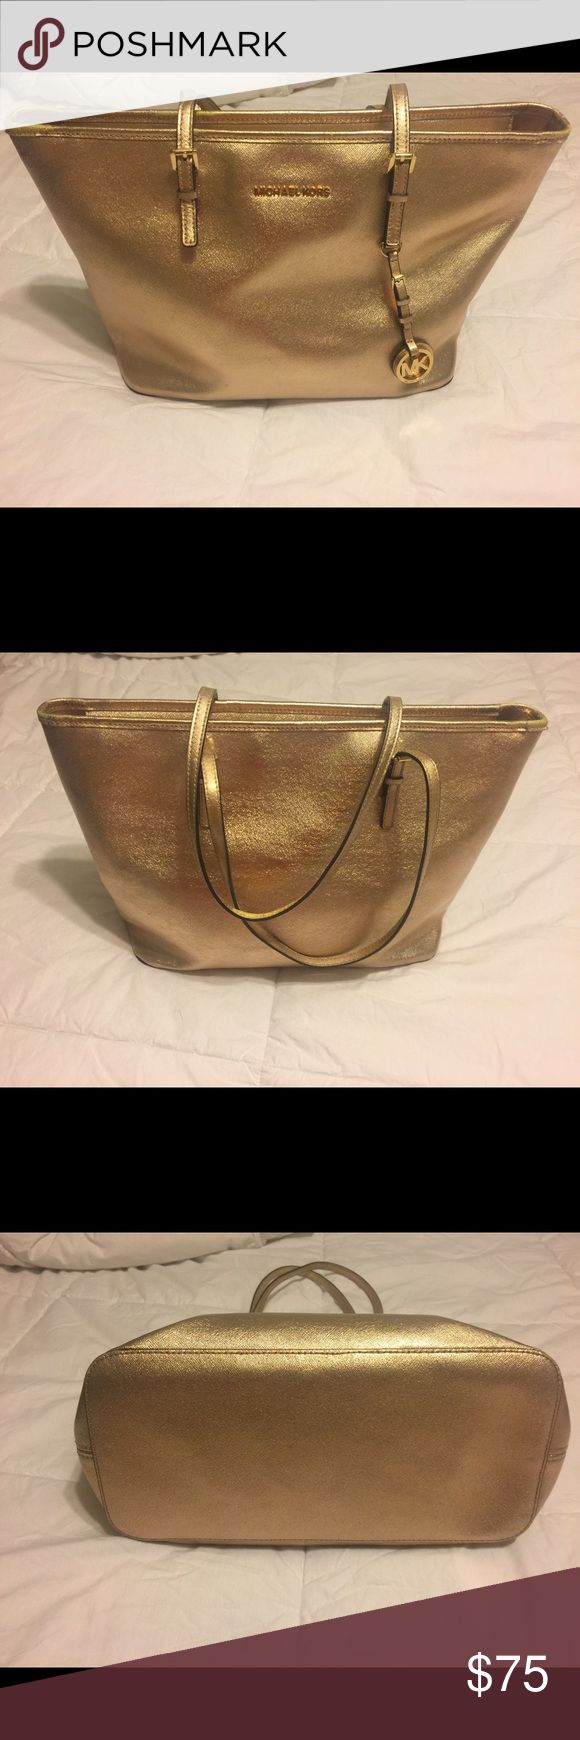 Large Michael Kors jet set tote Gold good used condition will accept pp Michael Kors Bags Totes